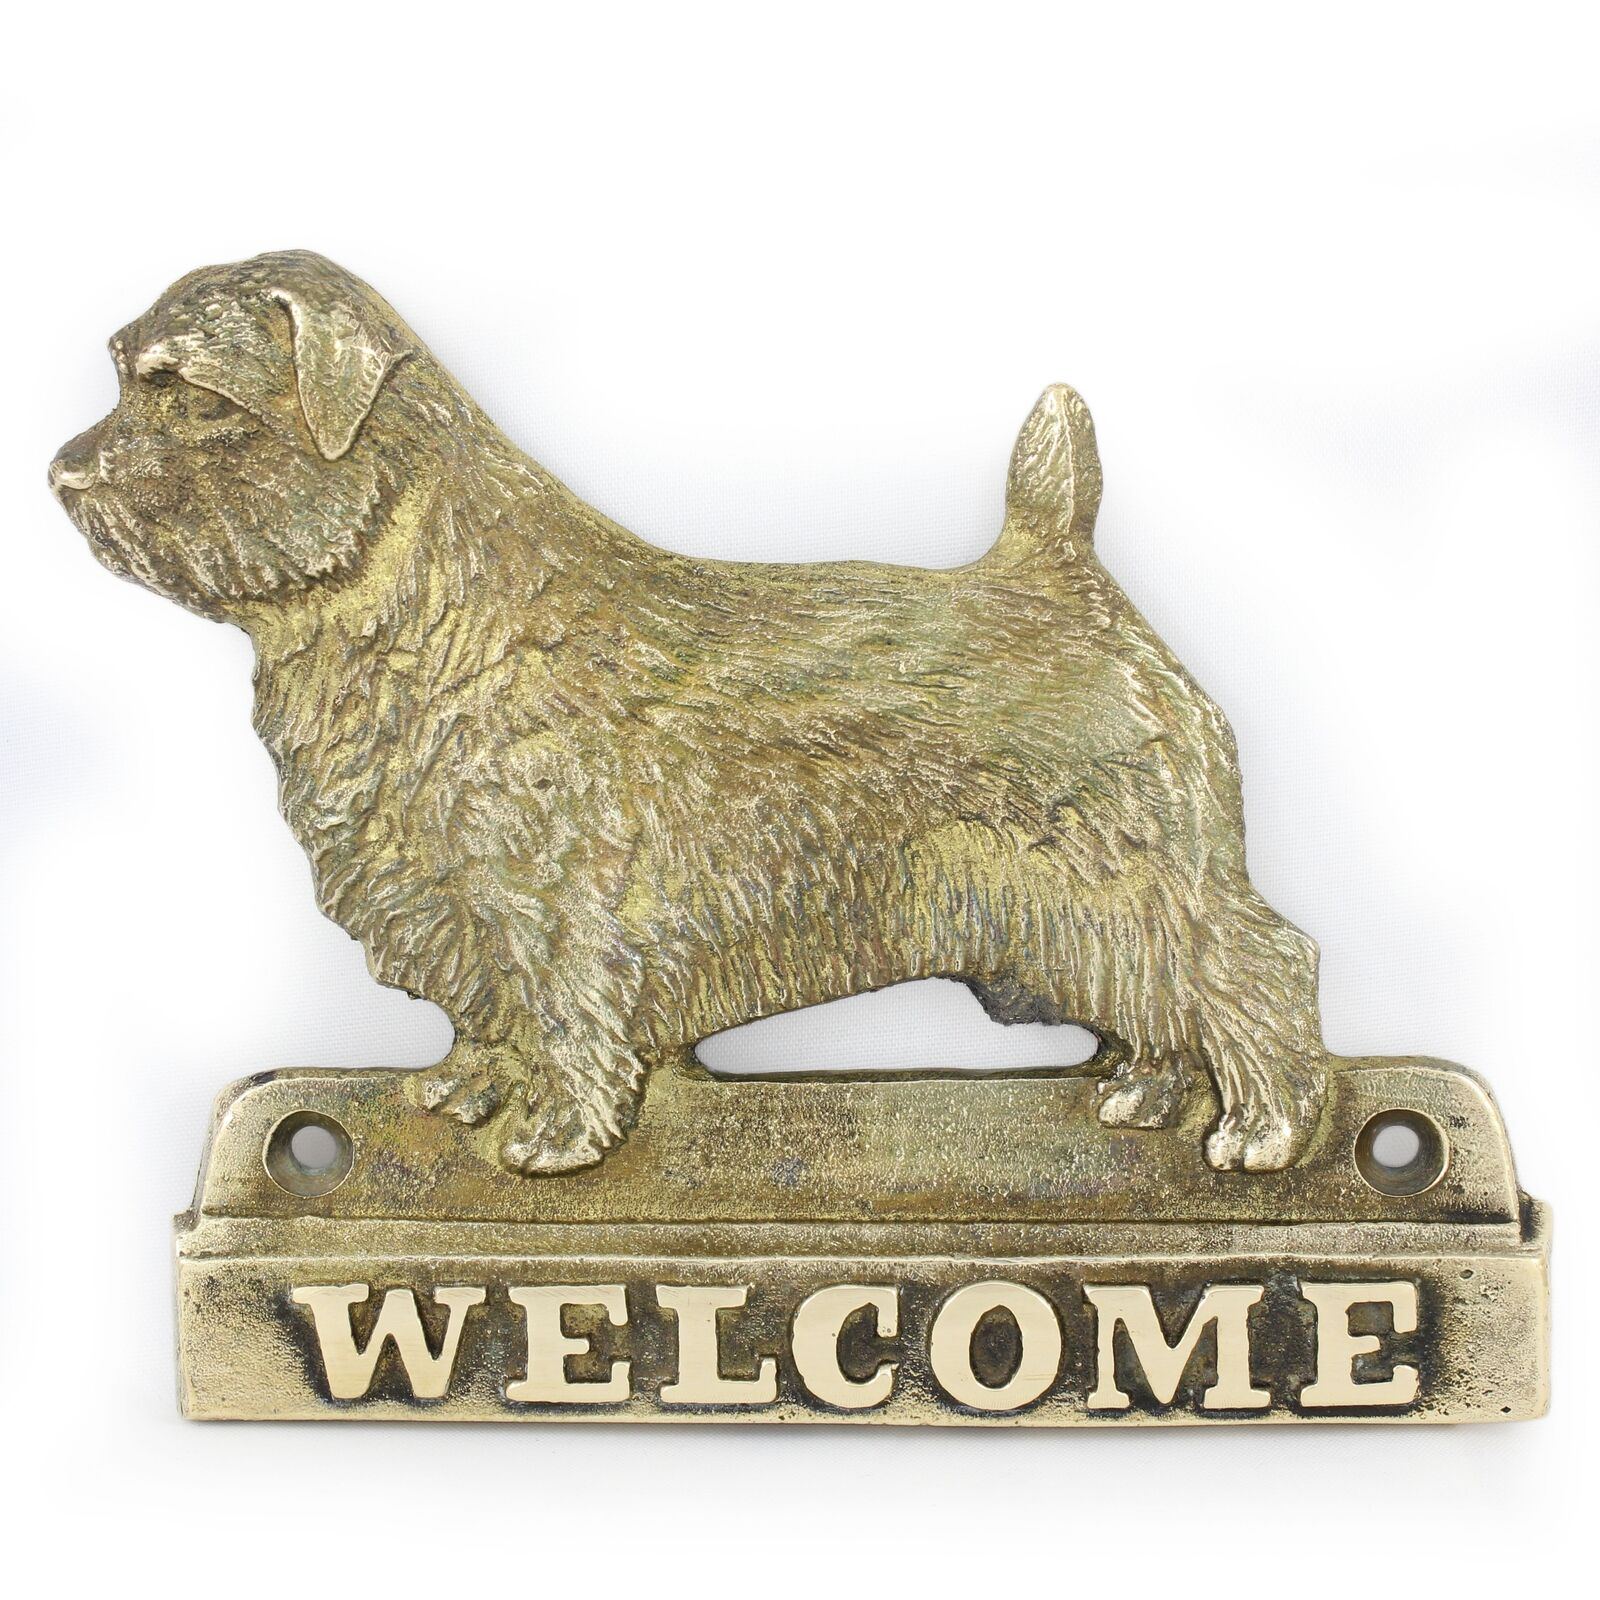 Norfolk Terrier - brass tablet with image of of of a dog Art Dog de207c